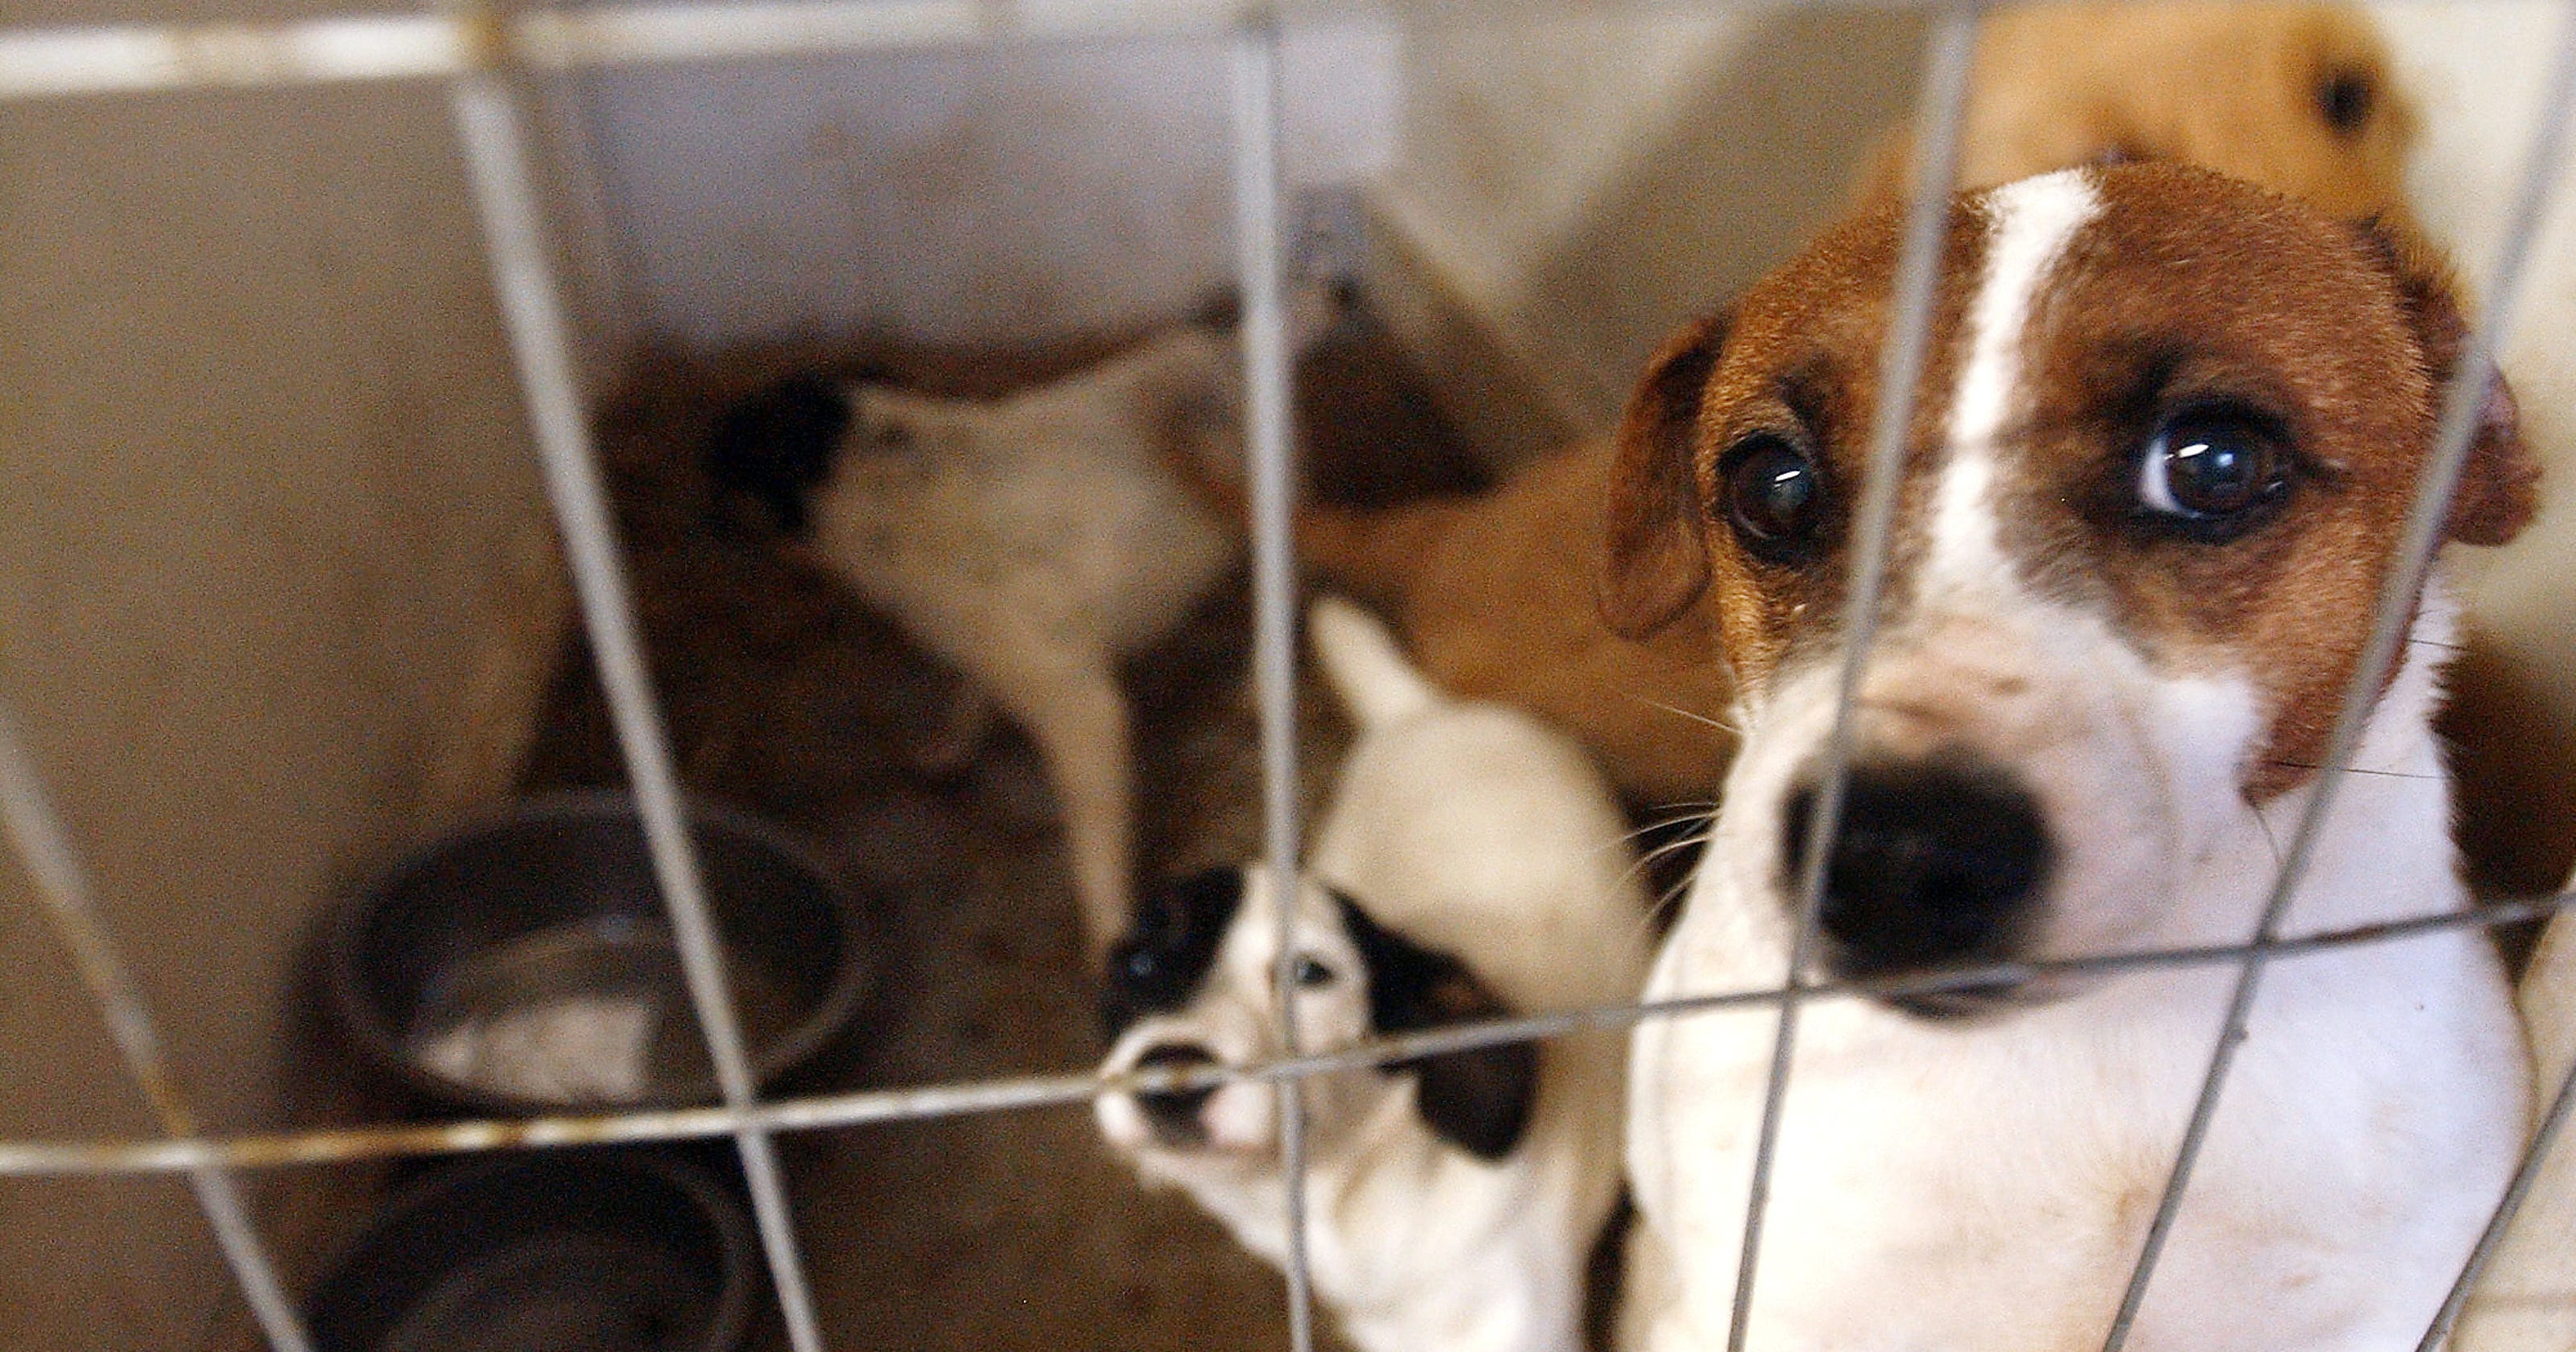 Puppy mills: Why NY will try again to ban them